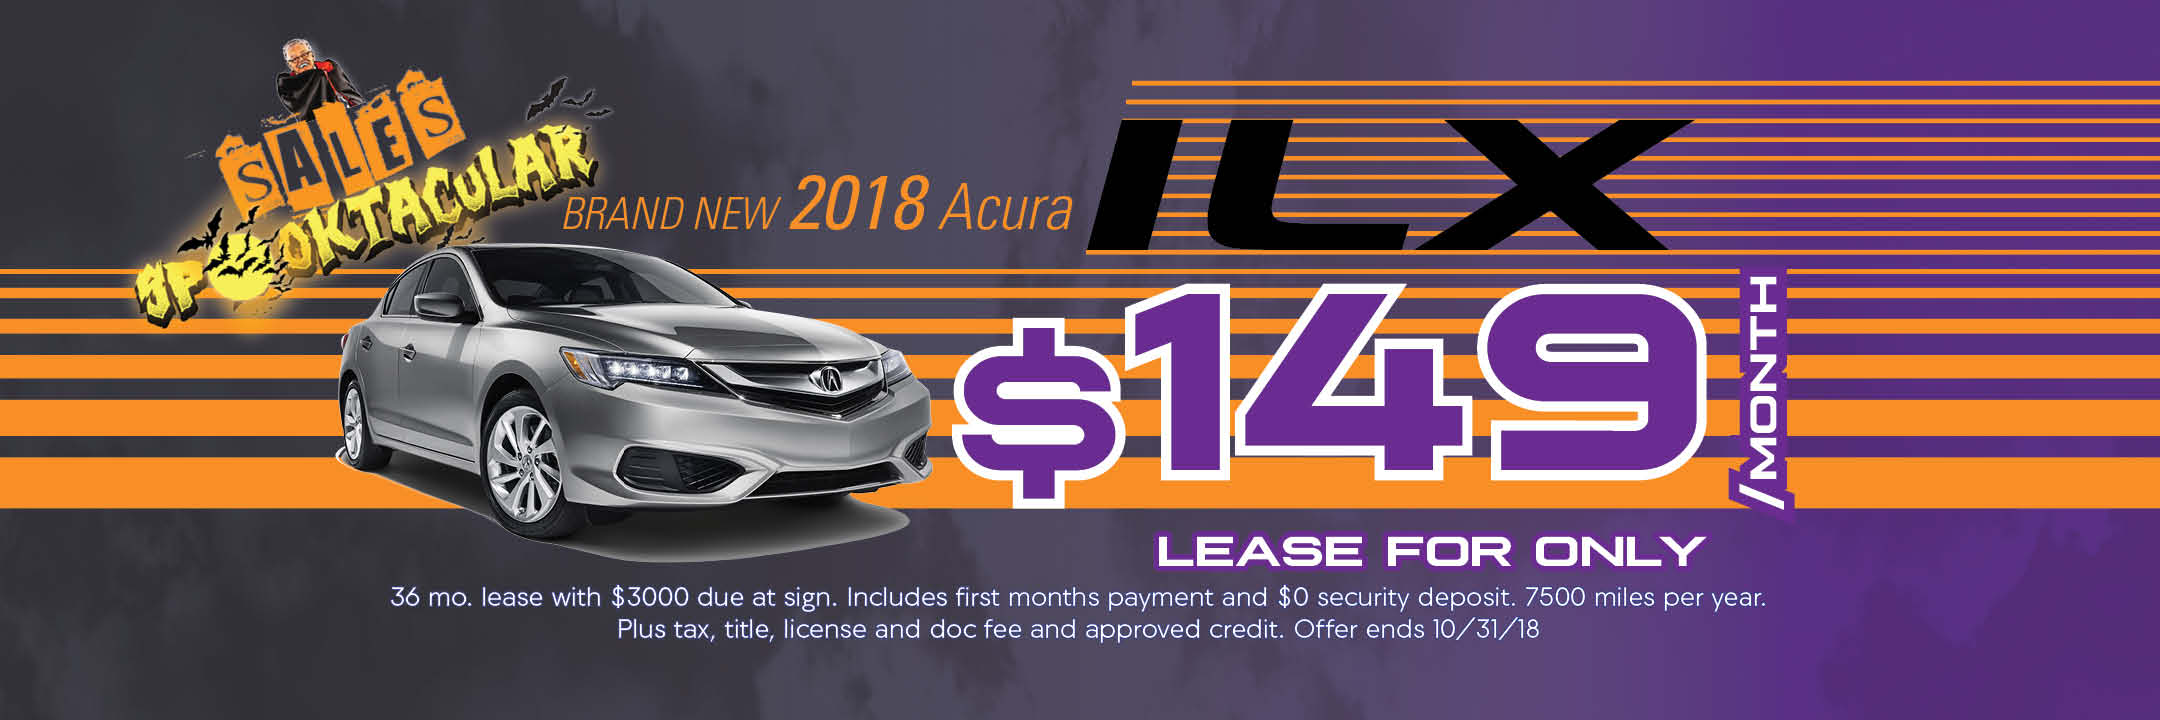 Chicago Acura Dealer New Acura And Used Acura For Sale Arlington - Acura tl 2018 accessories